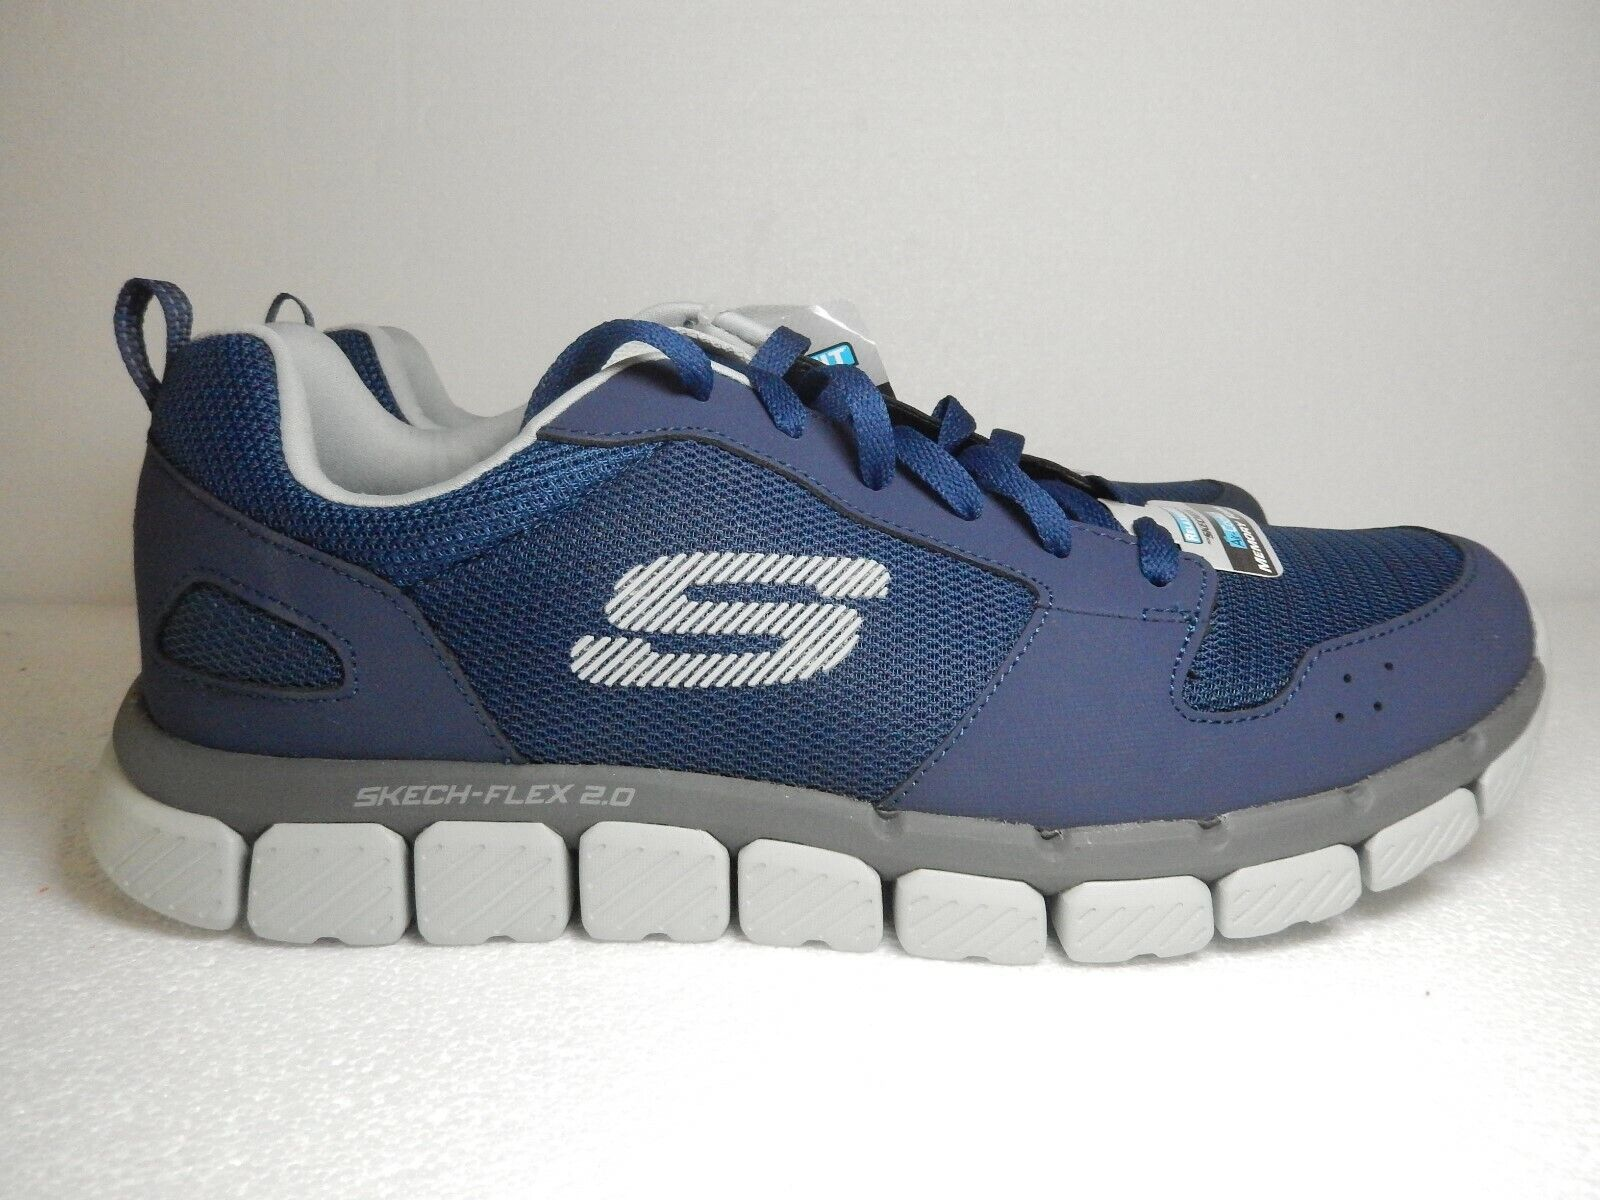 SKECHERS Relaxed Fit Air Cooled Memory Foam Sneakers 52618 bluee Men's Size 11